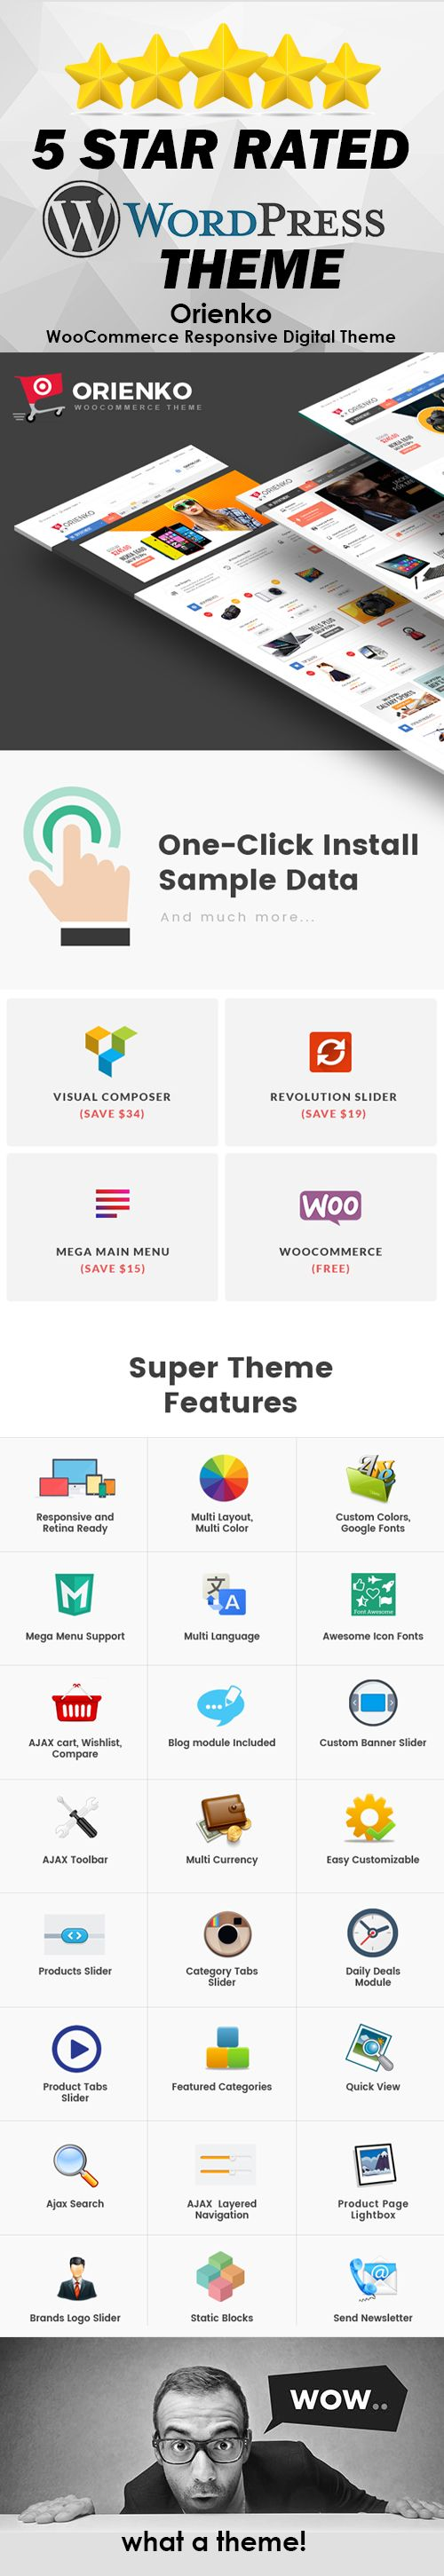 WOW! What a Wordpress theme! Suitable for e-commerce websites. With One-Click Sample Data. Visual Composer, Revolution Slider, Mega Main Menu, Woocommerce, and super theme features like Responsive and Retina Ready, Multi-Layout, Multi Color, Google Fonts, Multi Language, Awesome Icon Fonts, Custom Banner slider and many more features.